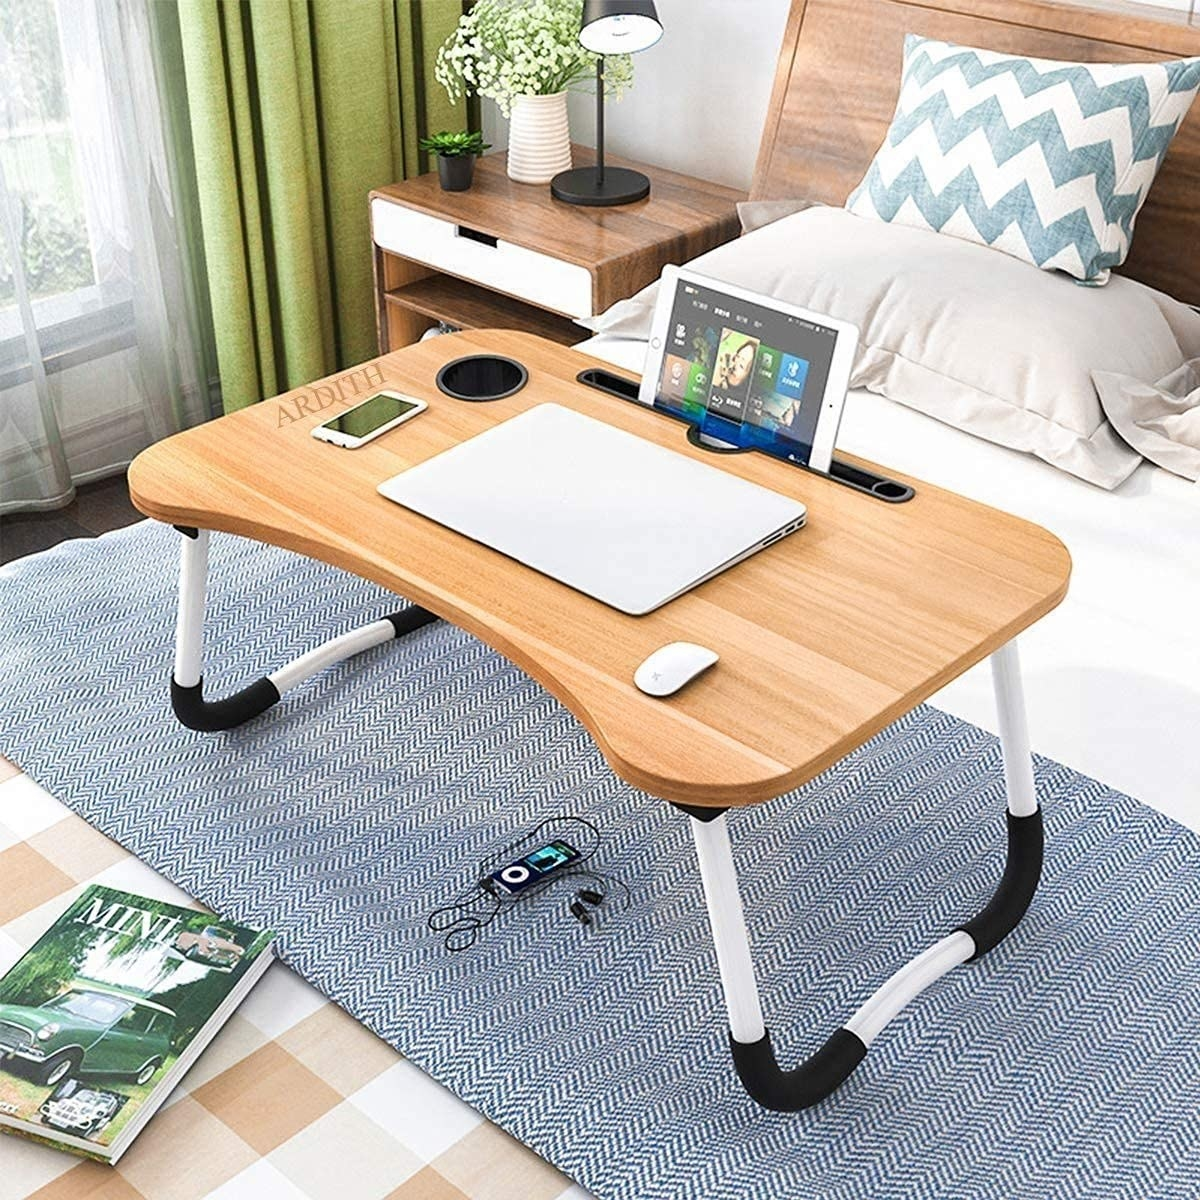 Foldable portable table kept on a bed. There's a laptop, tablet, mouse, and phone kept on it.